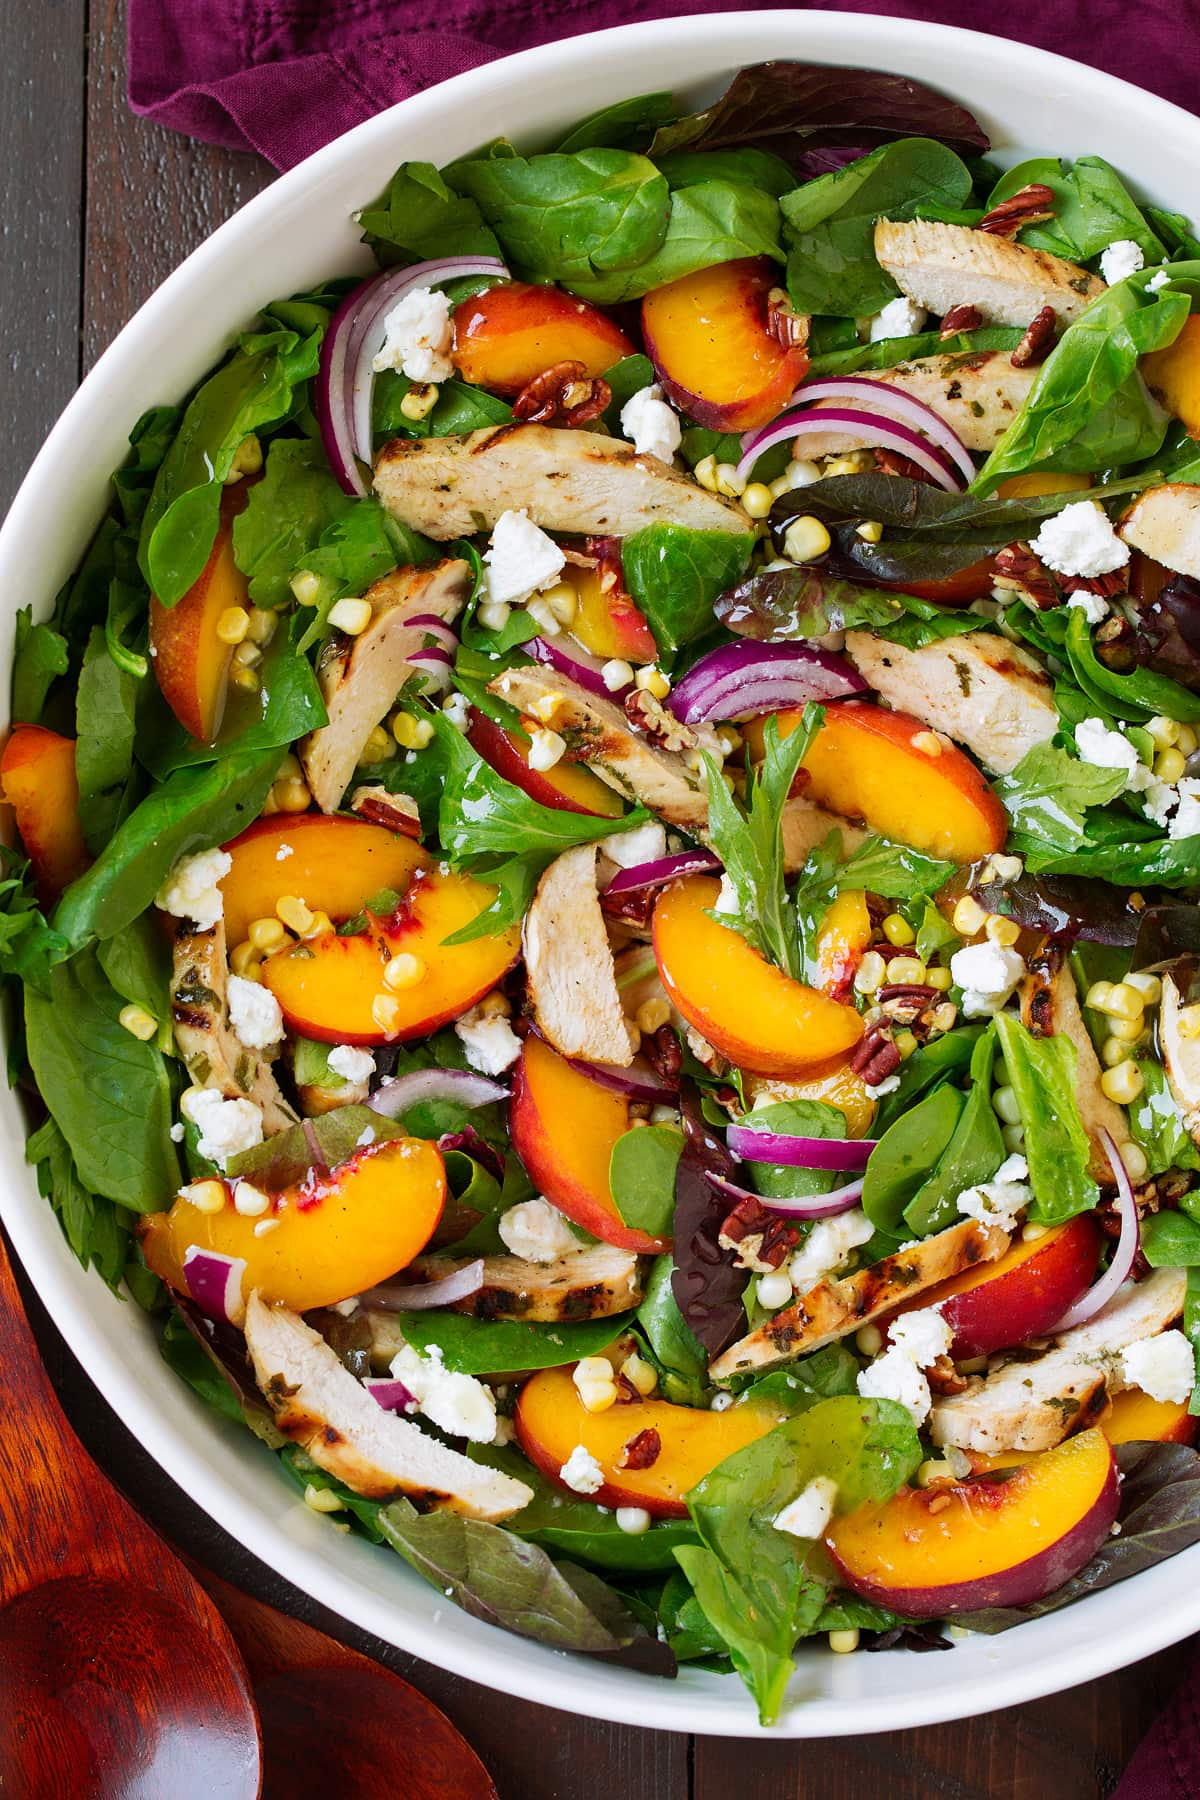 peach salad in bowl on table